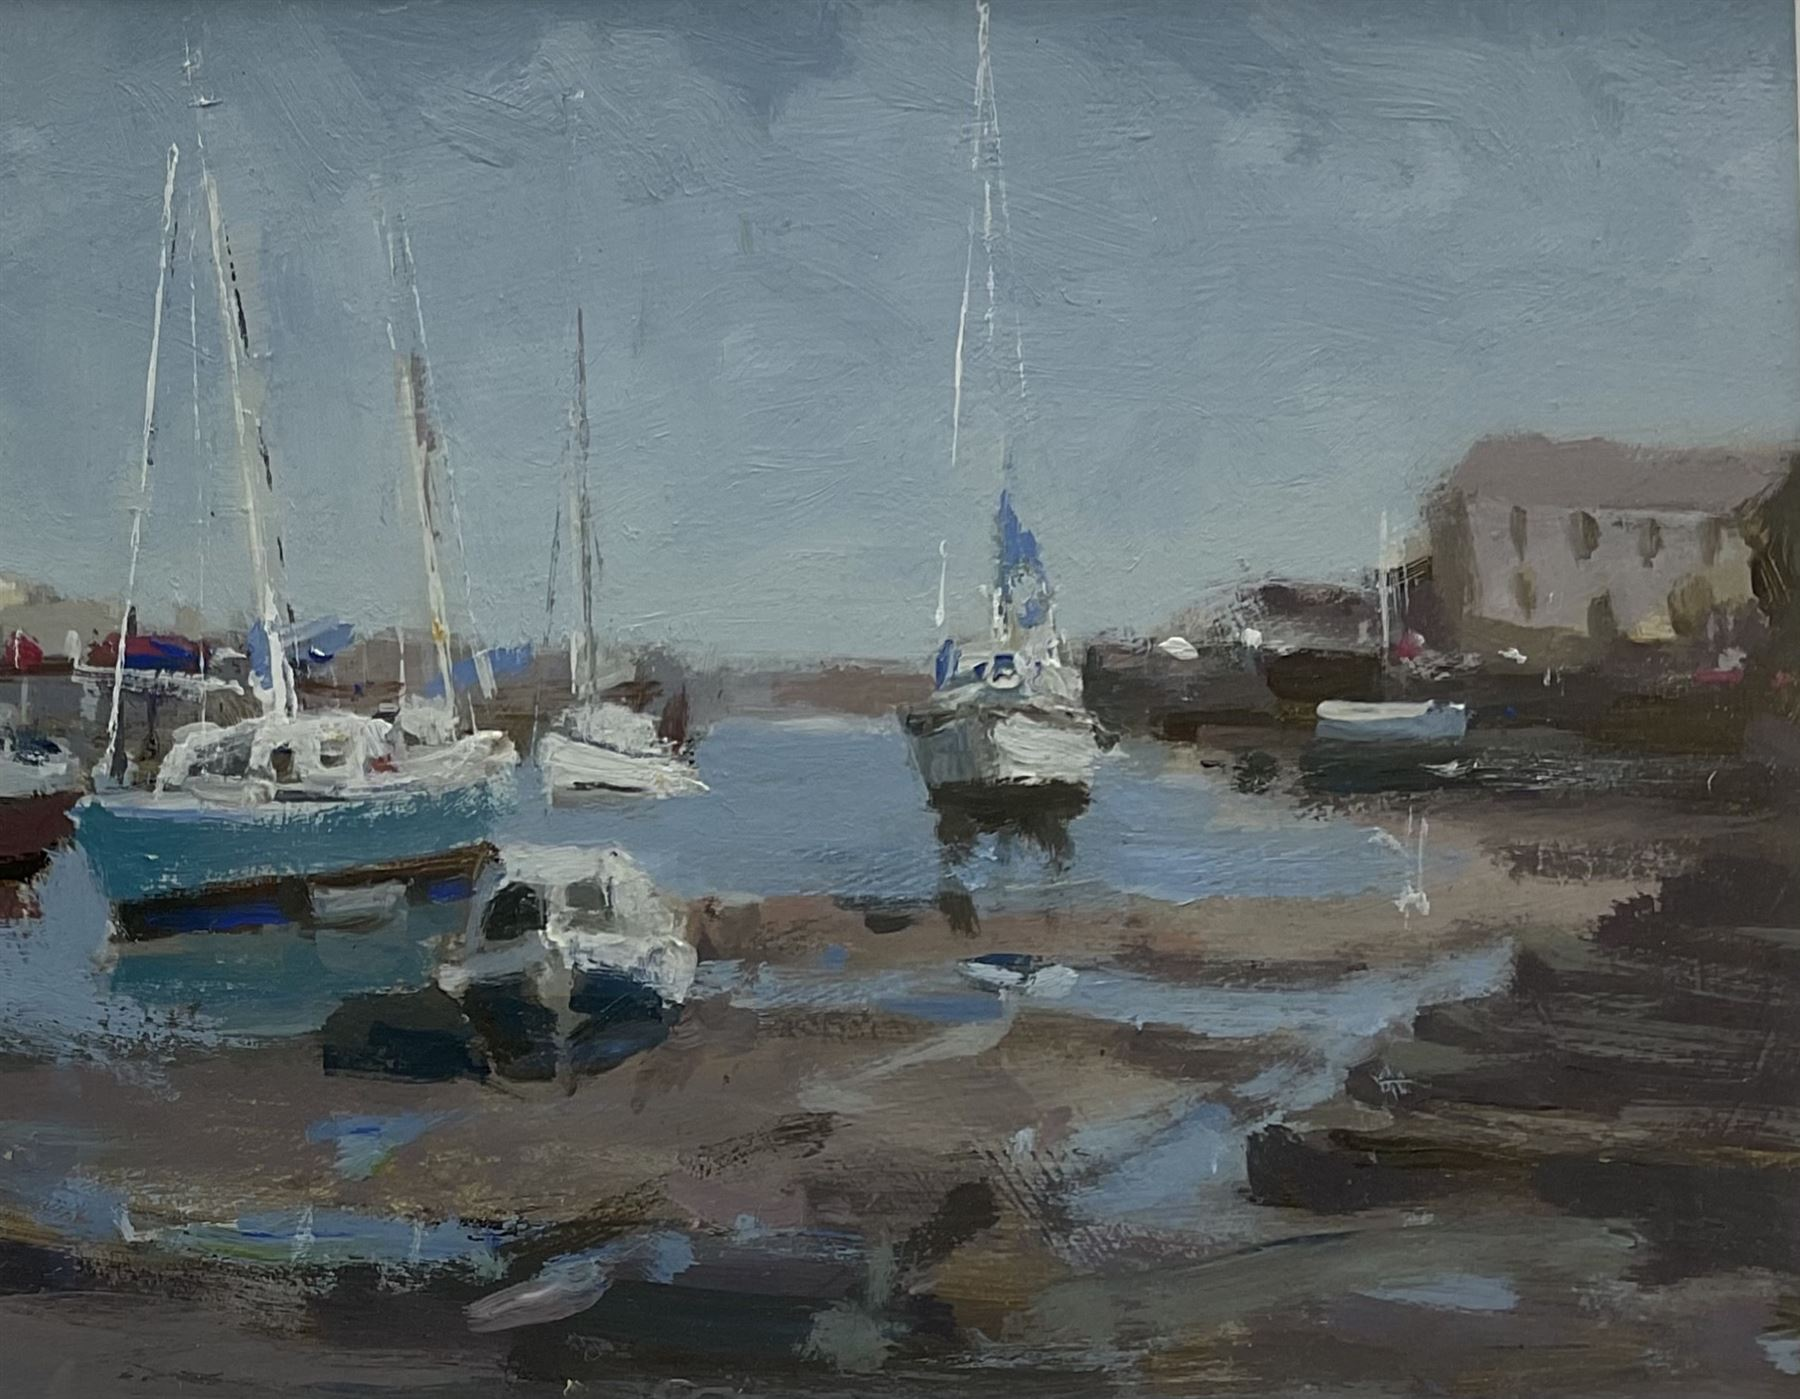 John Boyce (British 1938-): Yachts in the Harbour at Low Tide